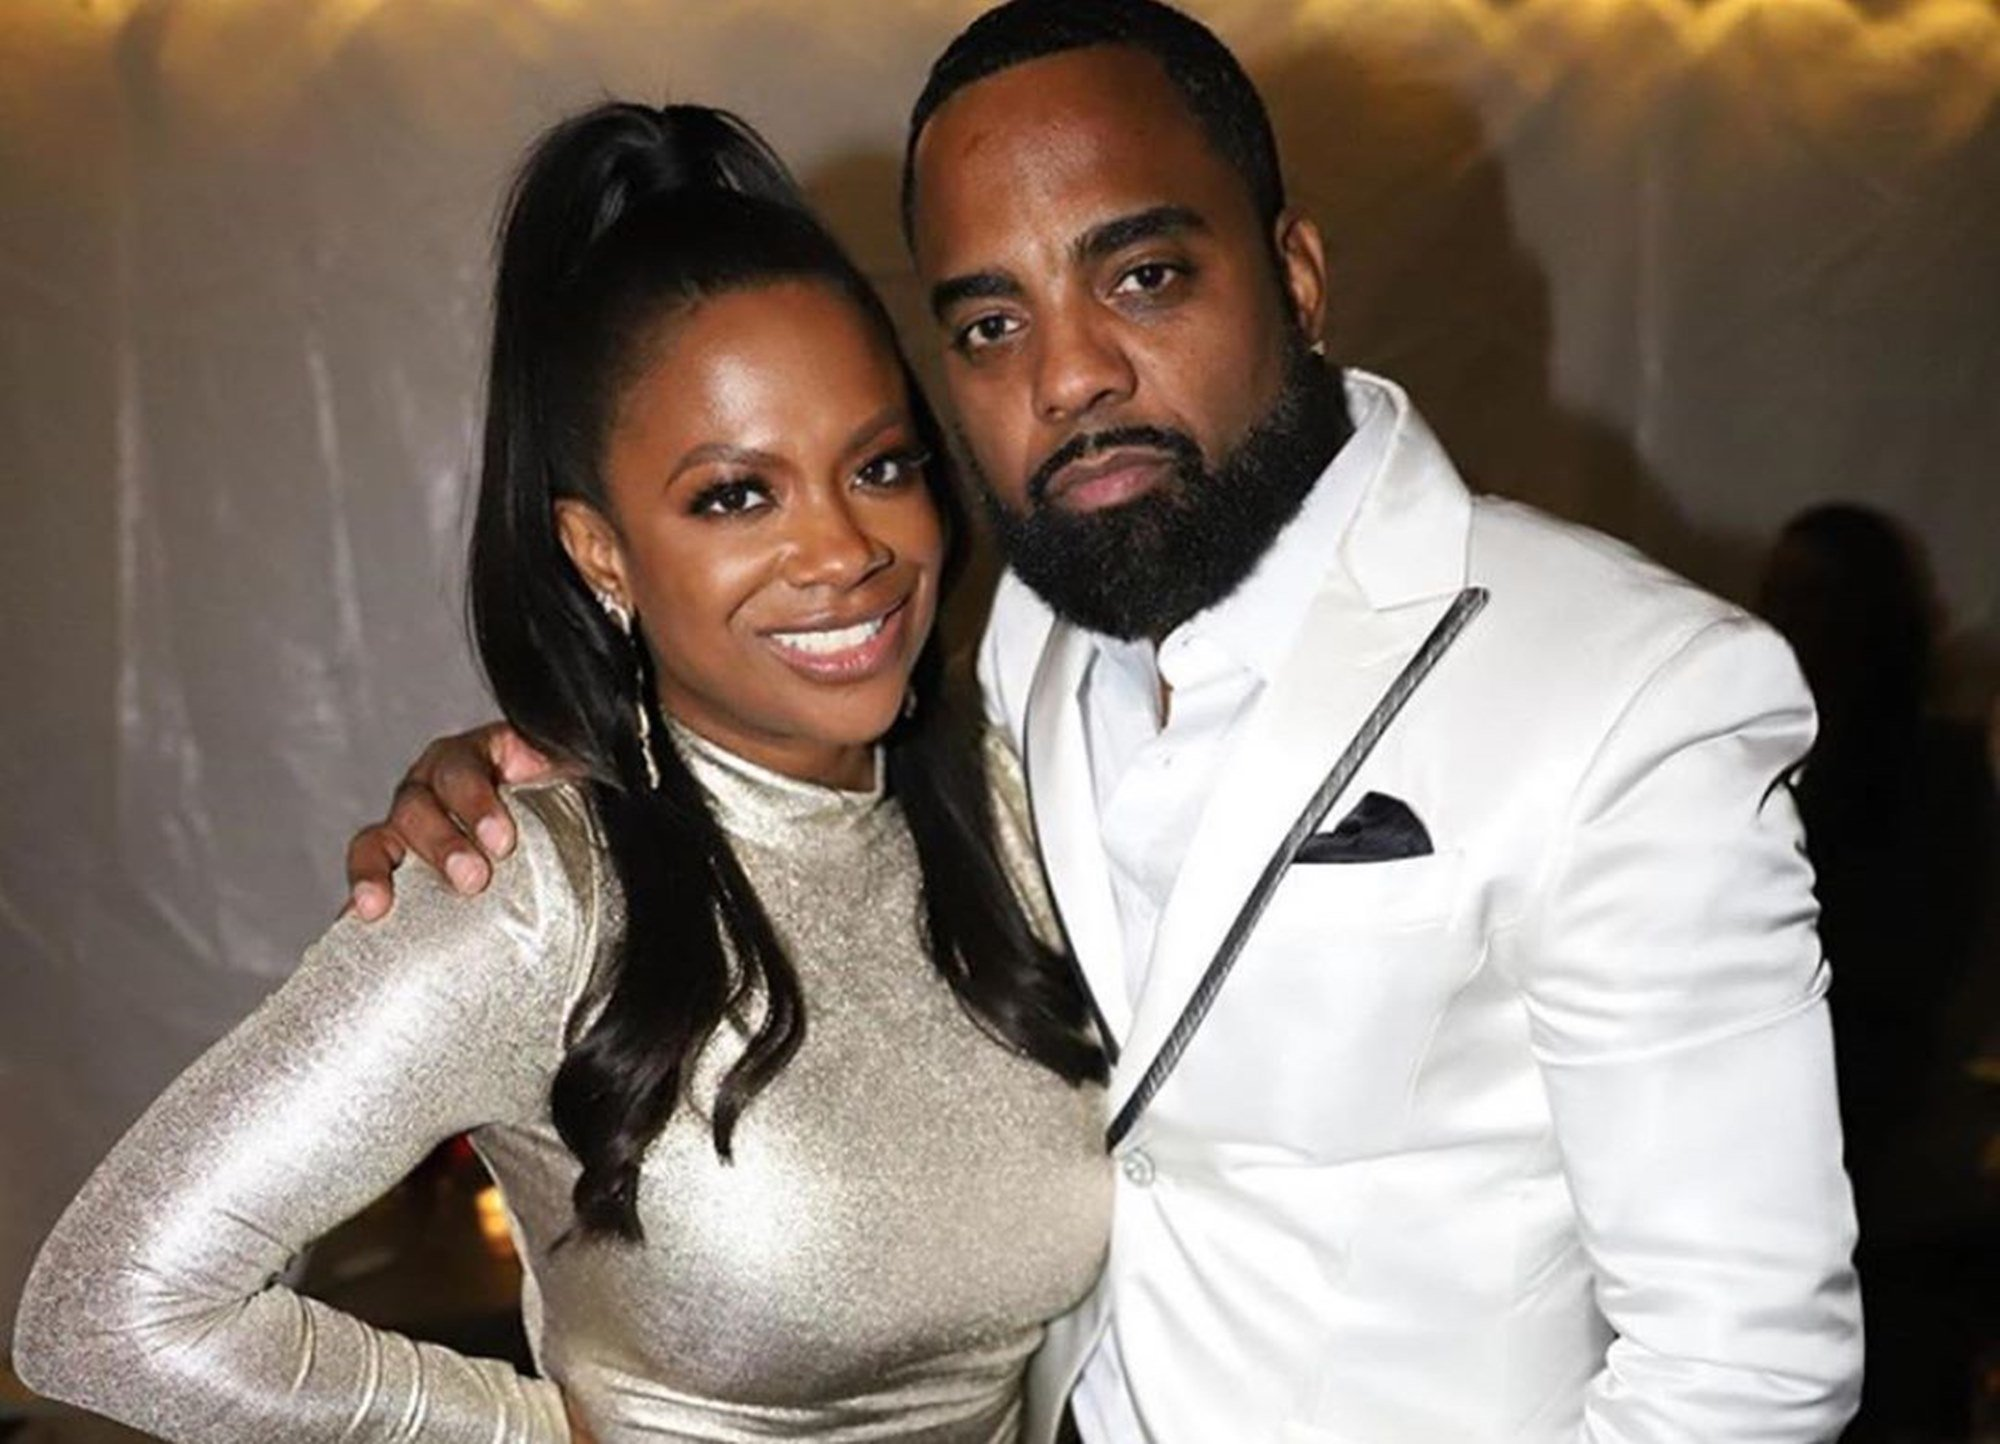 Todd Tucker Shares A Video With His Family – Check Out Kandi Burruss, Ace Wells Tucker, And Baby Blaze!